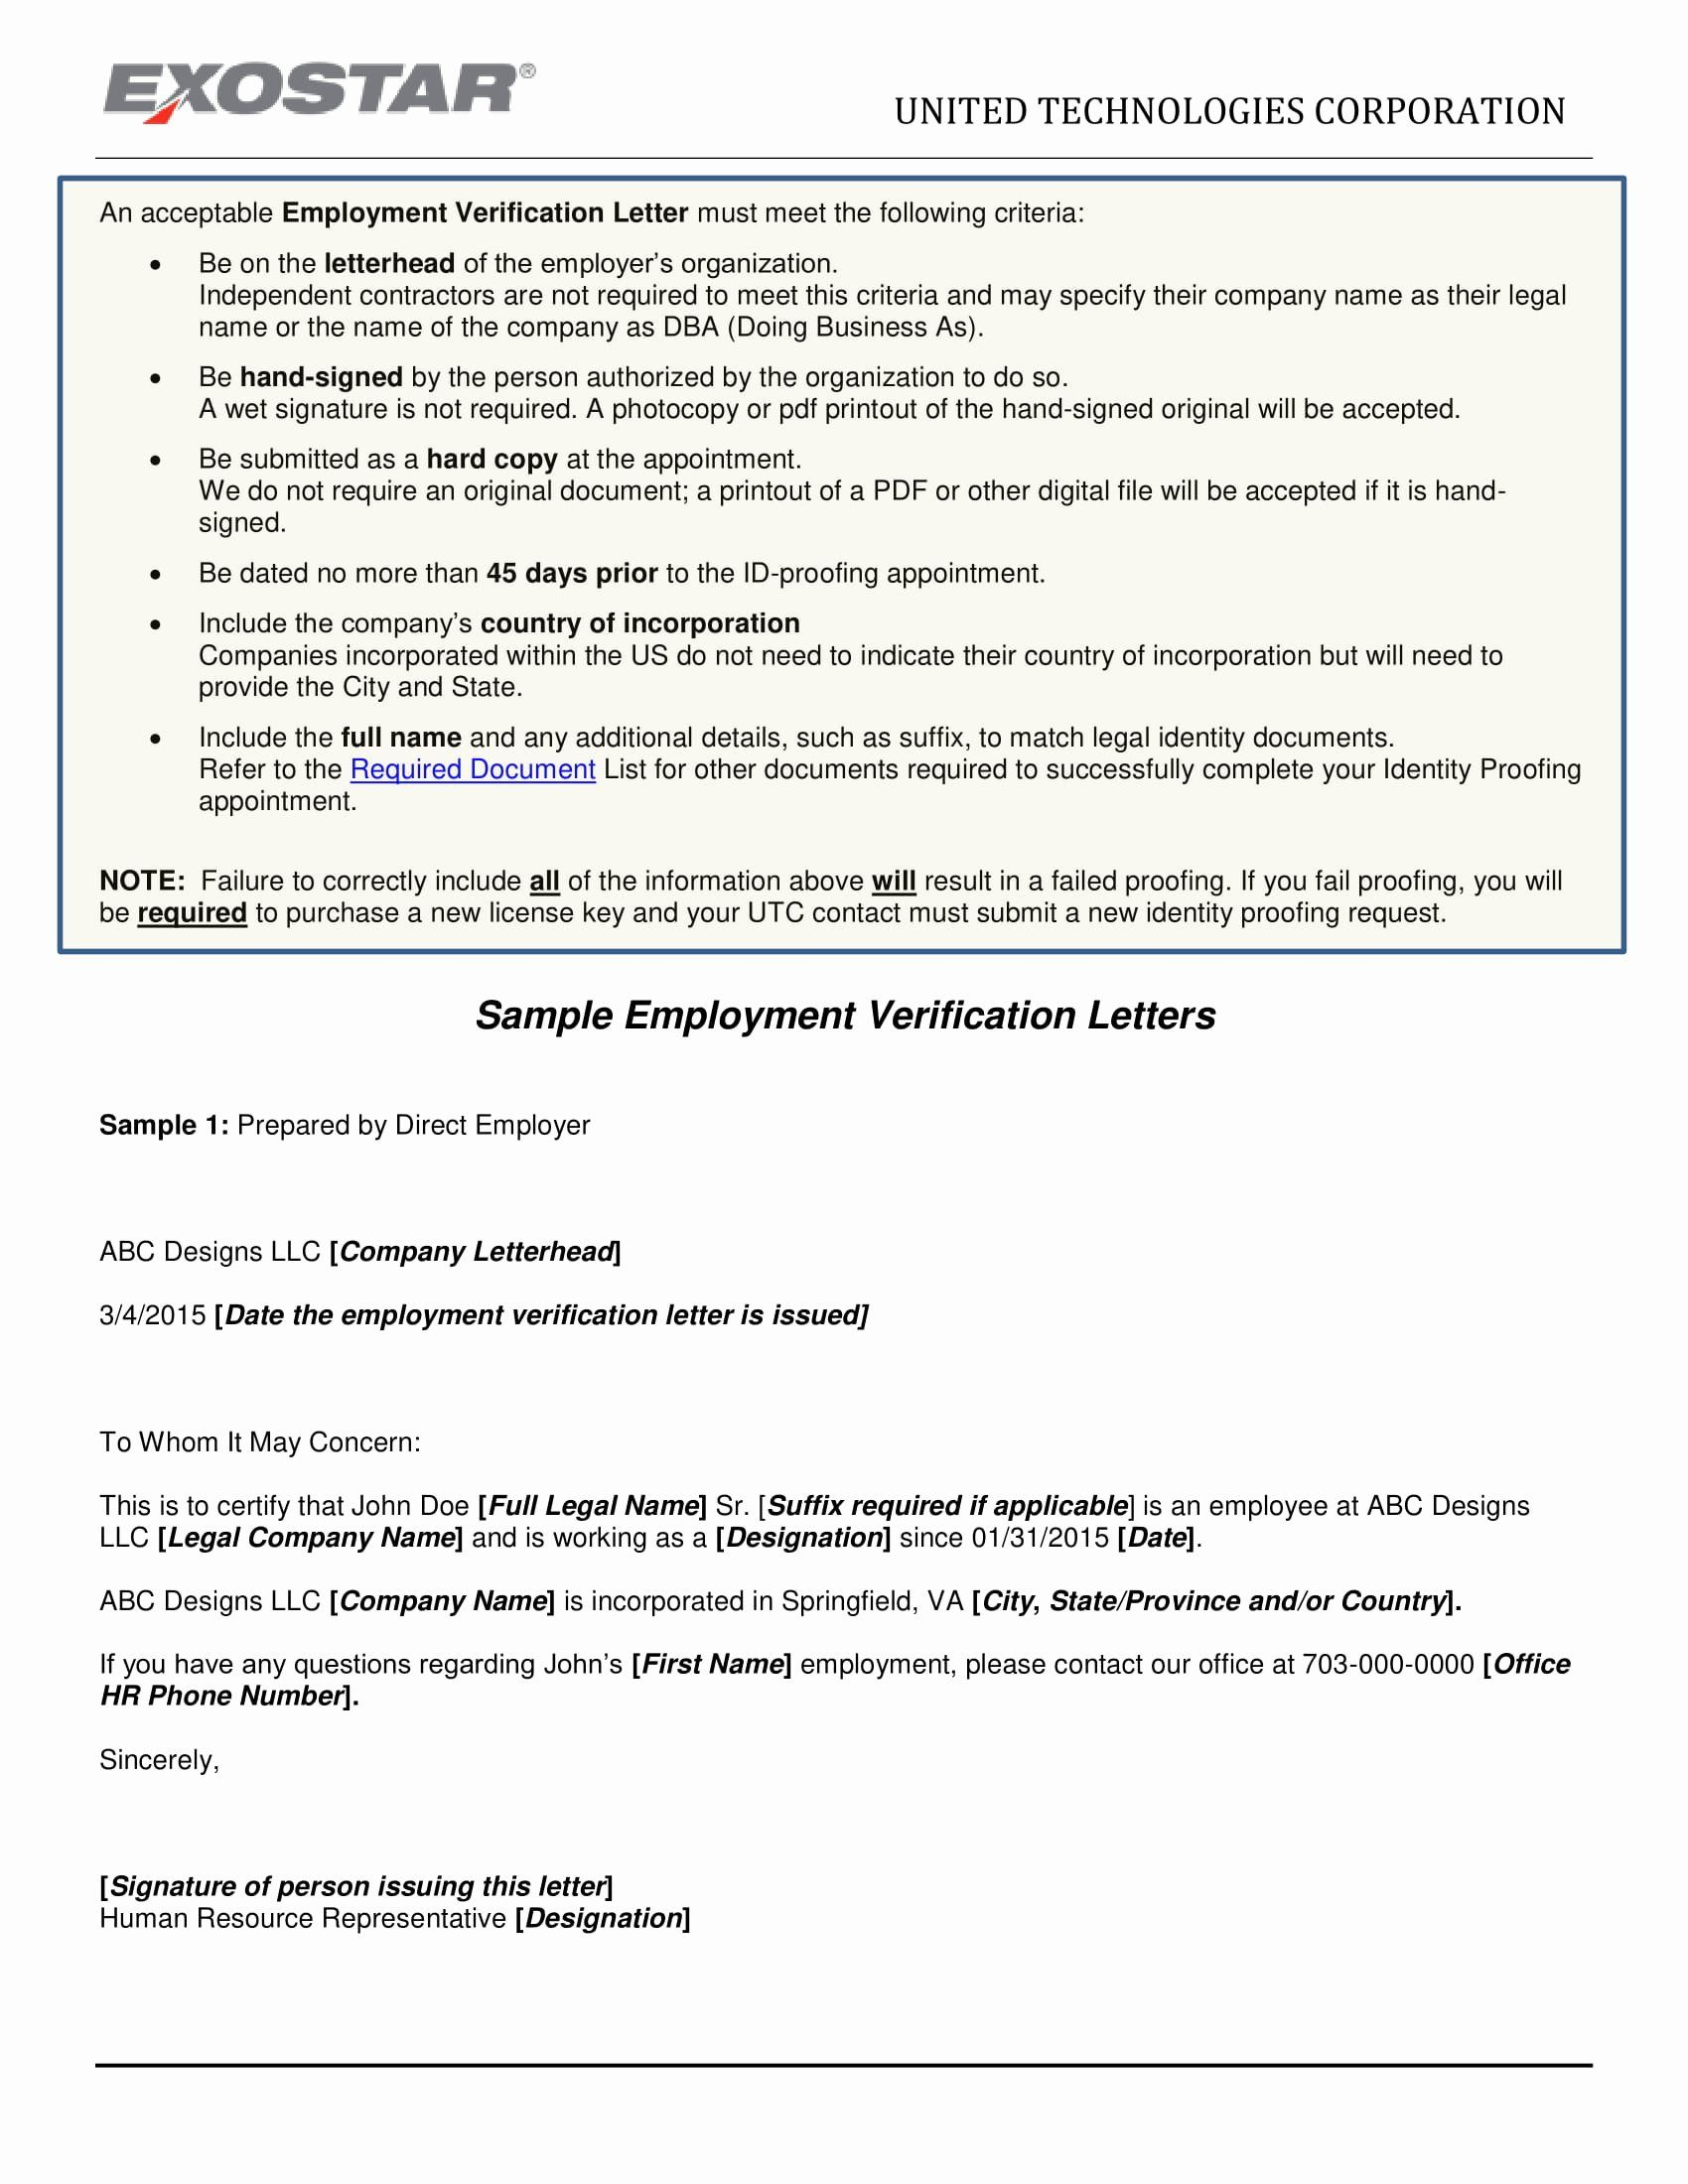 Free Employment Verification Letter Template Awesome Resume 40 Employment Verification Example Ideas Letter Templates Lettering Indesign Brochure Templates